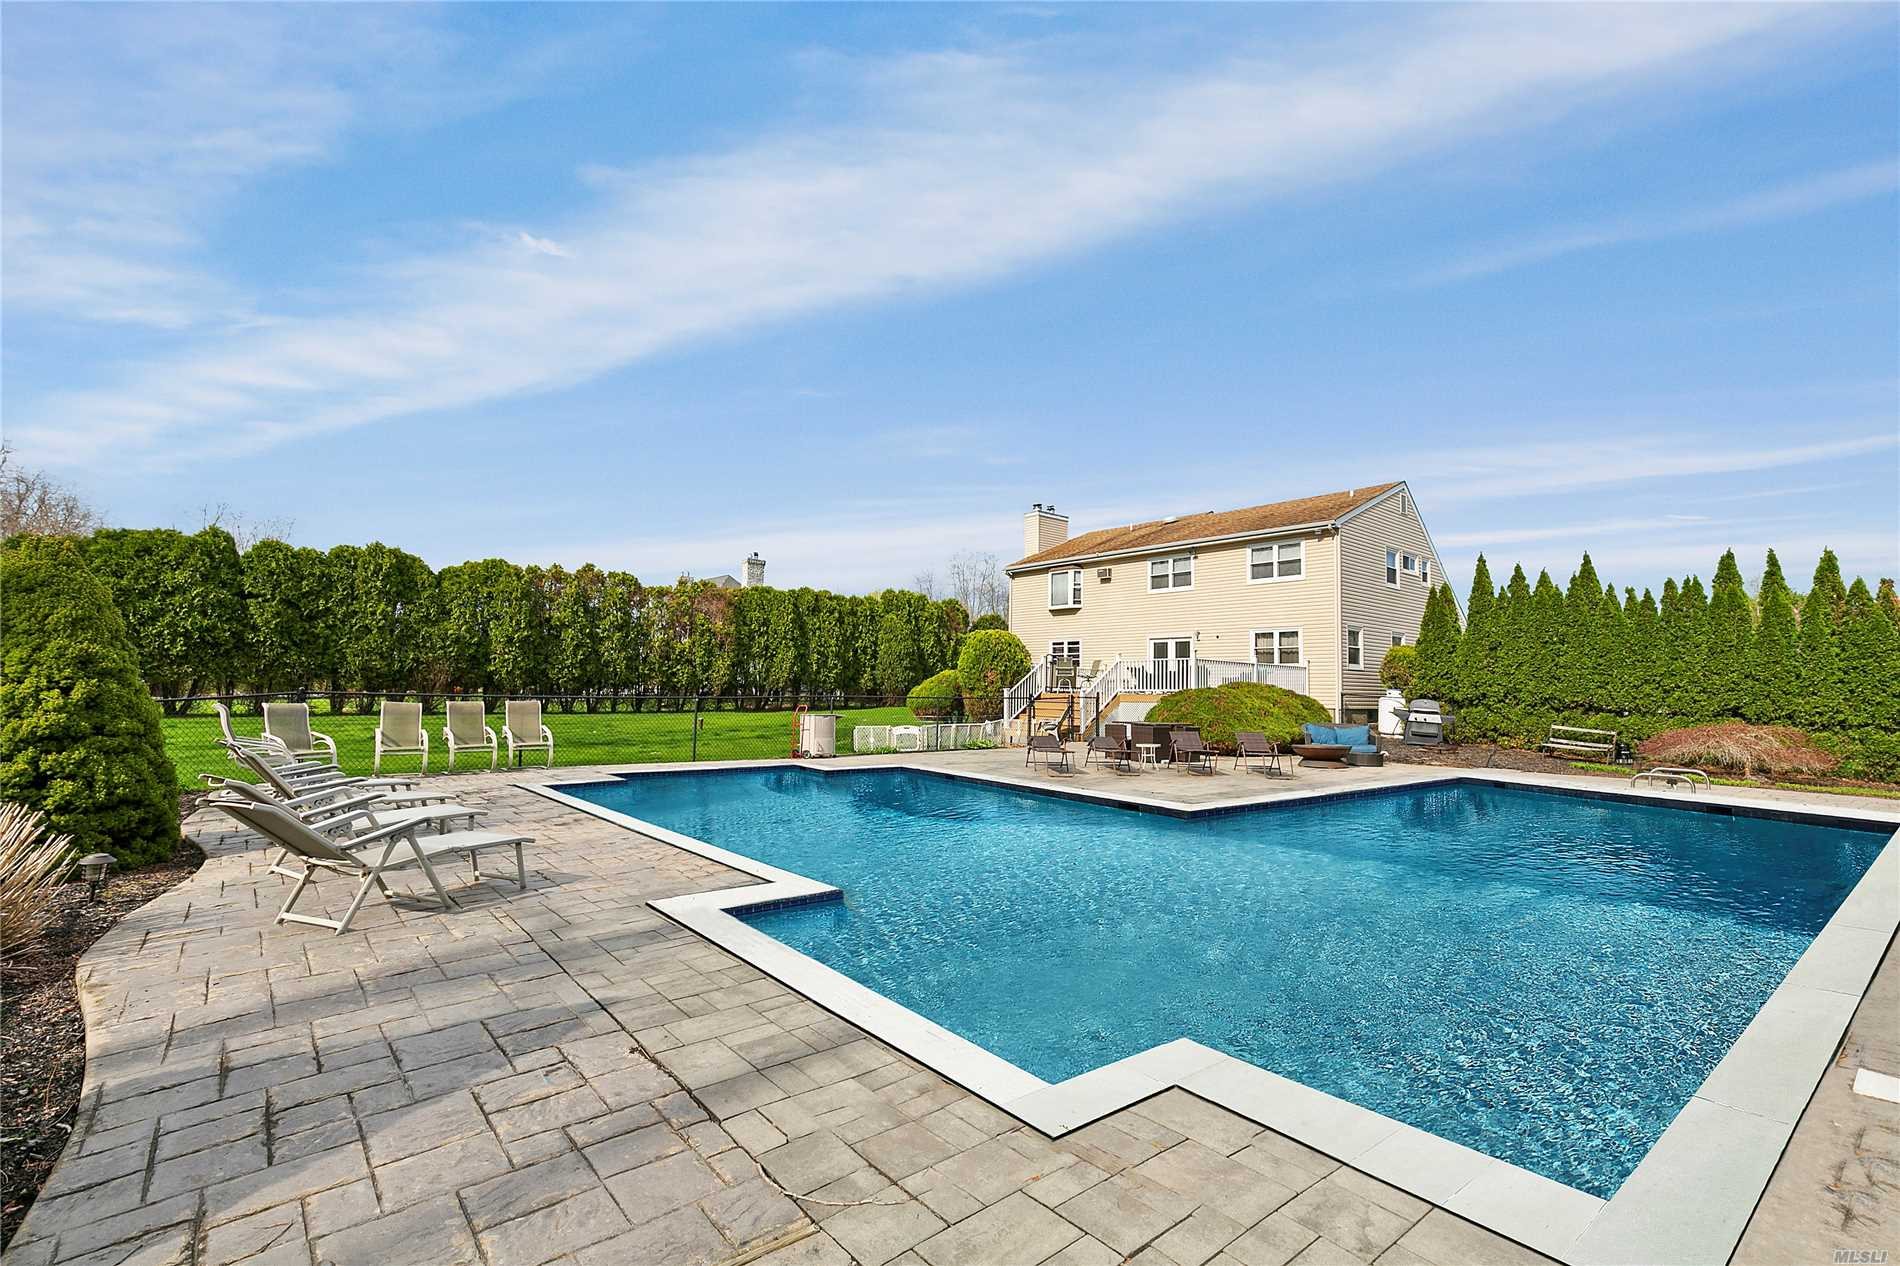 44 Chateau Dr - Manorville, New York